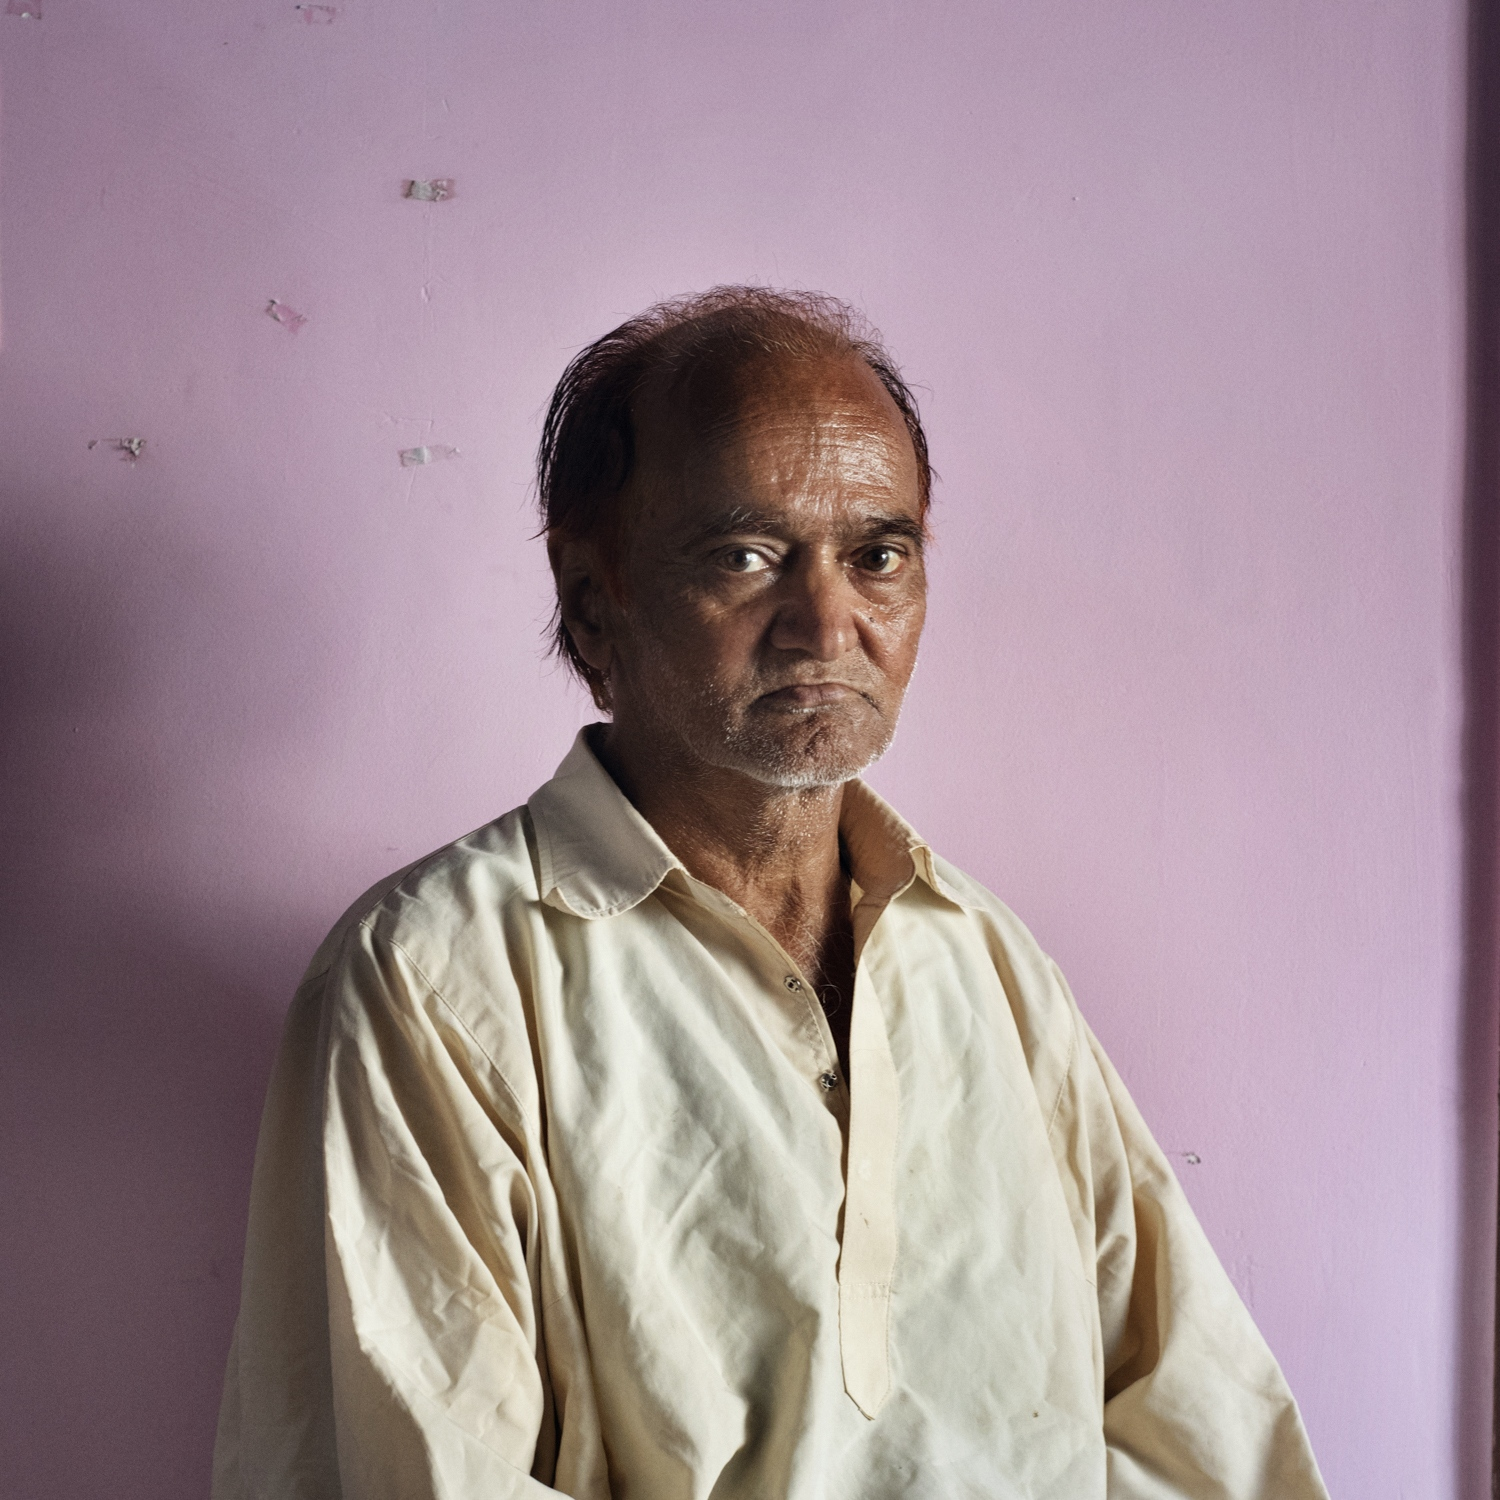 """Abdul Rehman, 64 years old, from Srinagar. """"When i was a child i used to play with girls after schools but when i was going back home my father used to slap me because of it"""", says Rehman. His family was against his behaviour from the very beginning. Only her mother was supportive and that's why both of them were kicked out from home when Rehman was 16 years old. She is now retired from dancing and singing because of her physics condition and struggling to earn some money."""